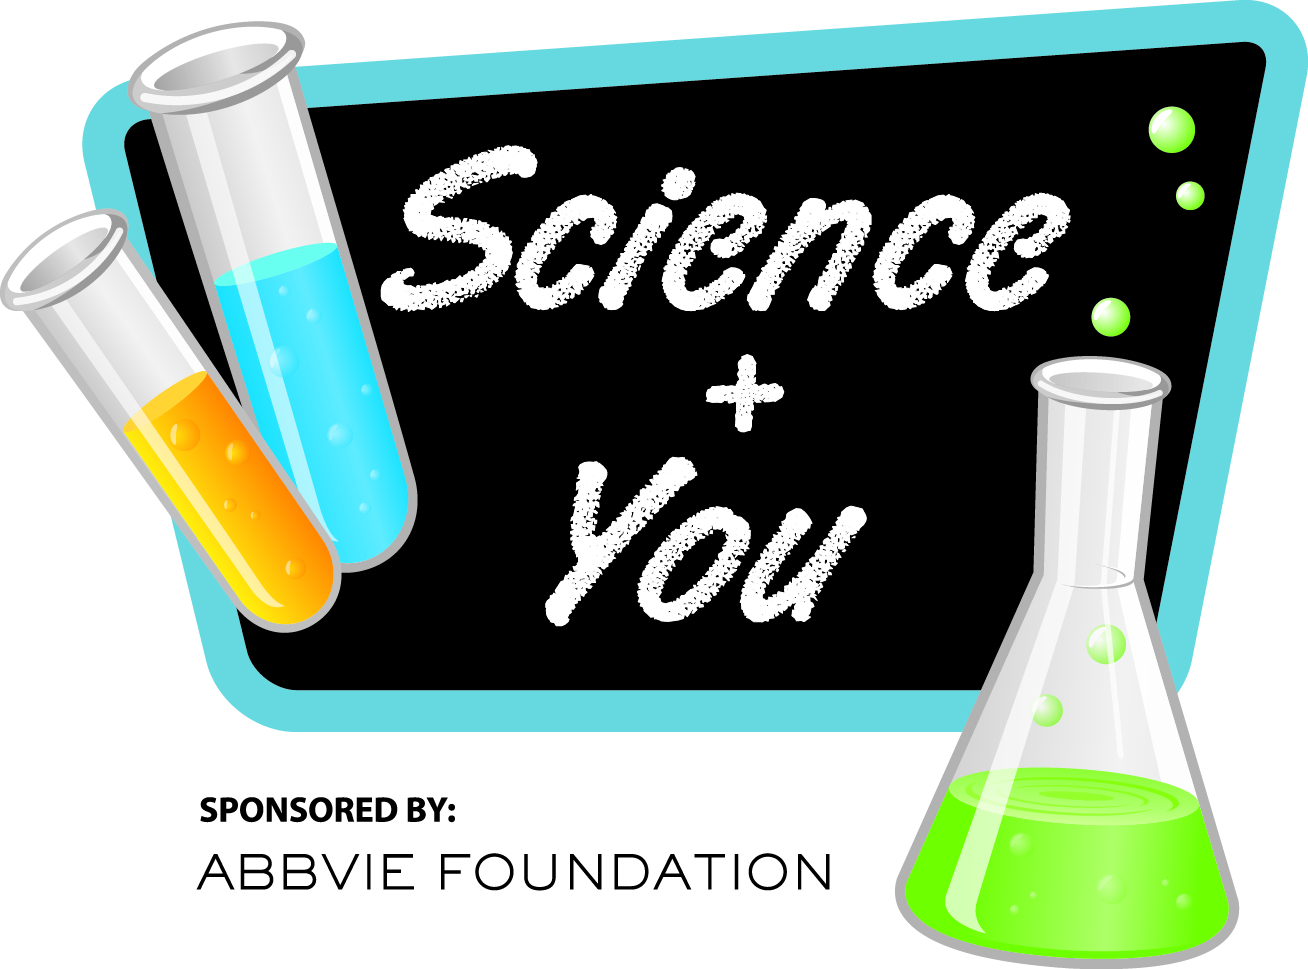 Science you 4c abbvie foundation